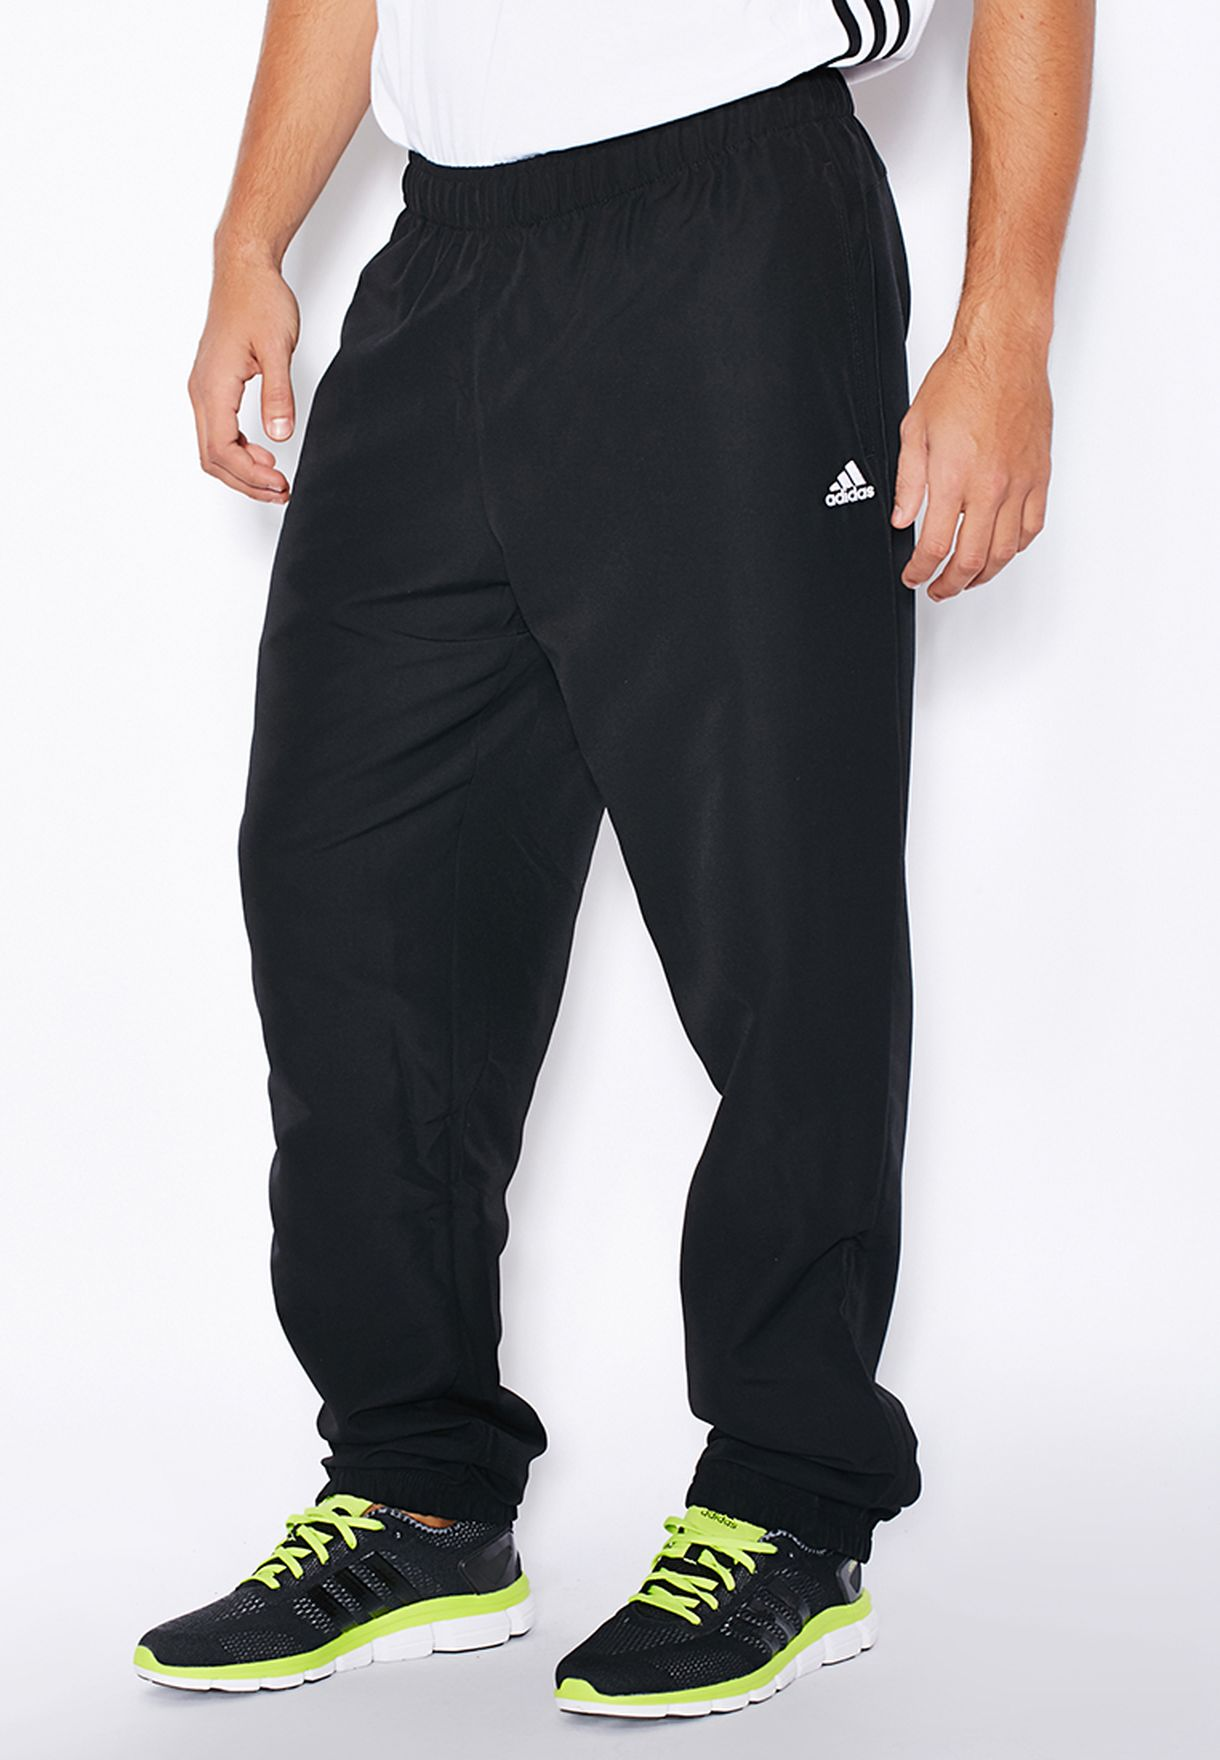 brand new 1f5a2 cd0ac Essential Stanford Sweatpants